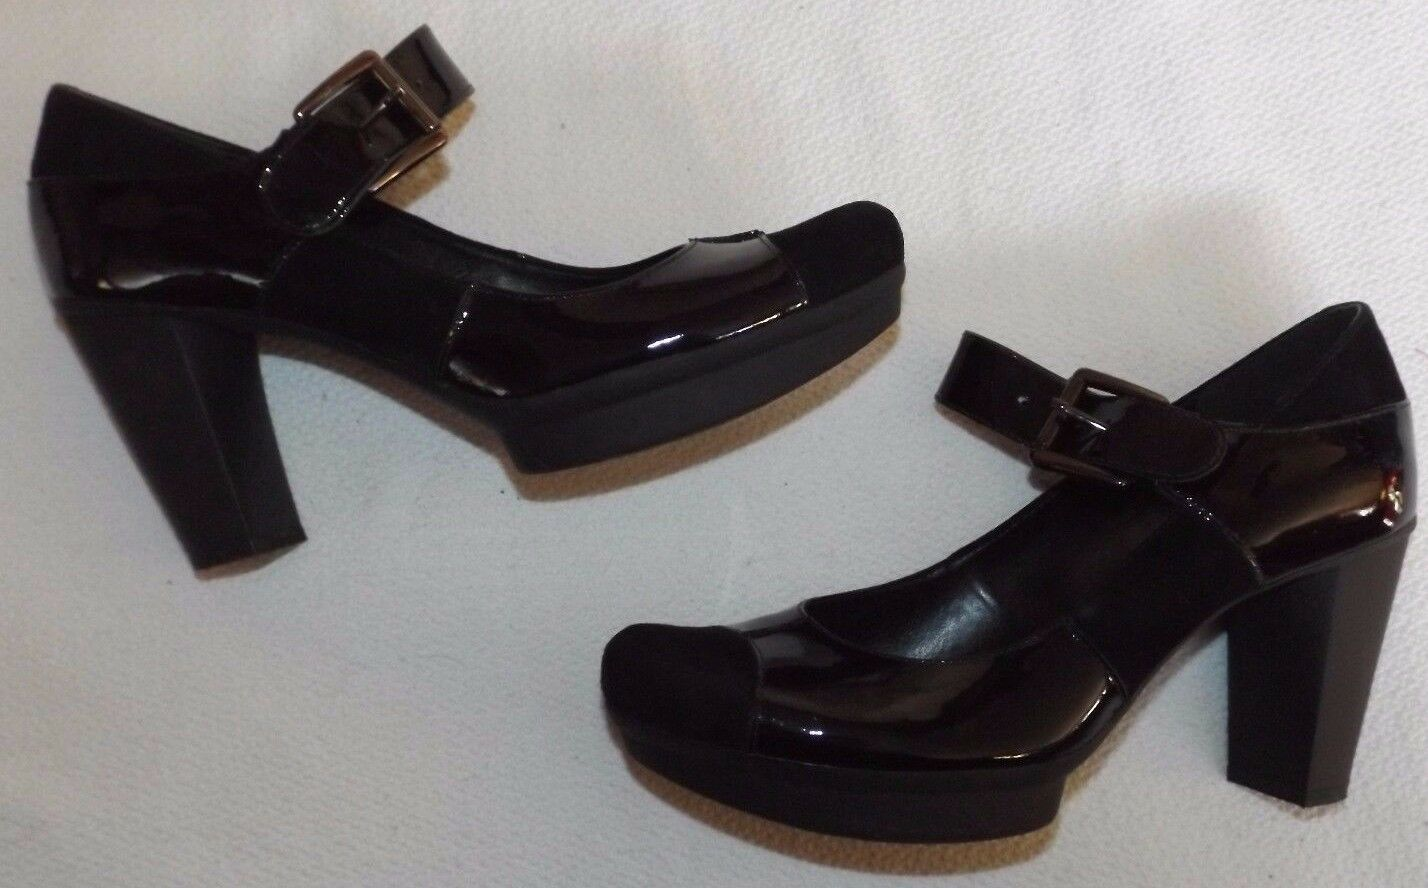 CLARKS UK 6 EUR 39 BLACK PATENT LEATHER & BLOCK SUEDE MARY JANE 3¼